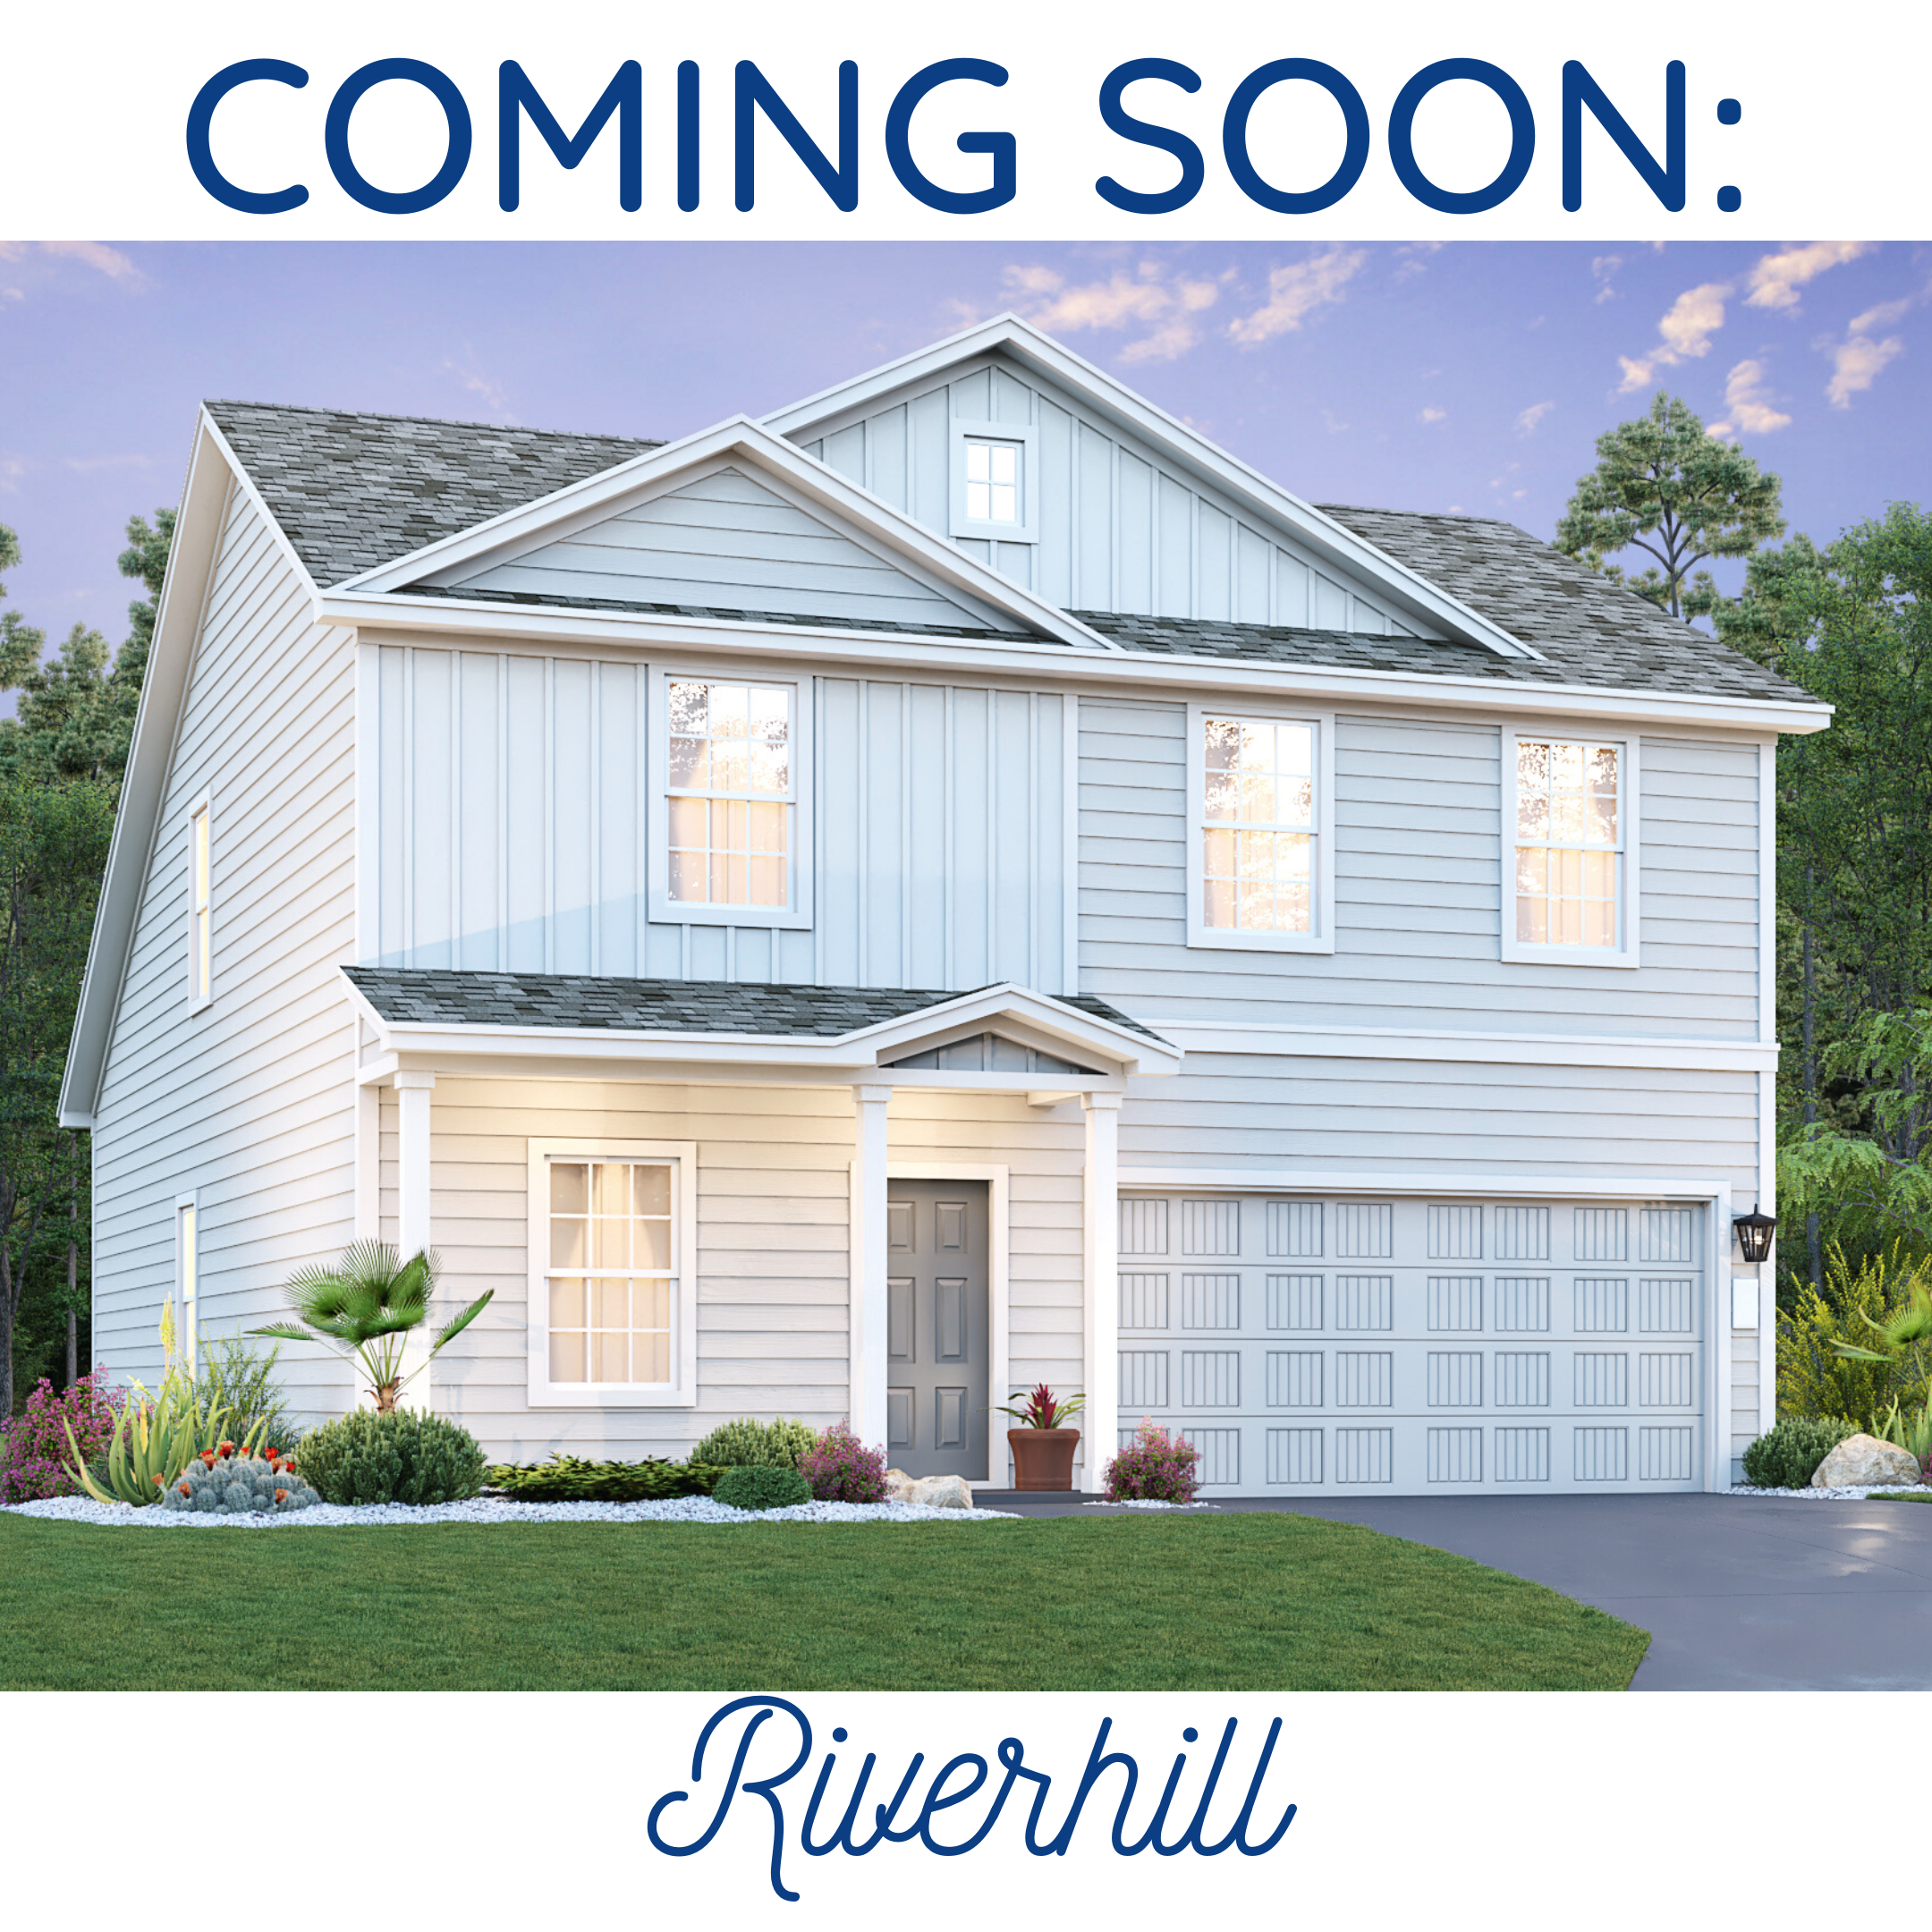 Coming Soon Png In 2020 New Home Communities Lennar Eagle Homes